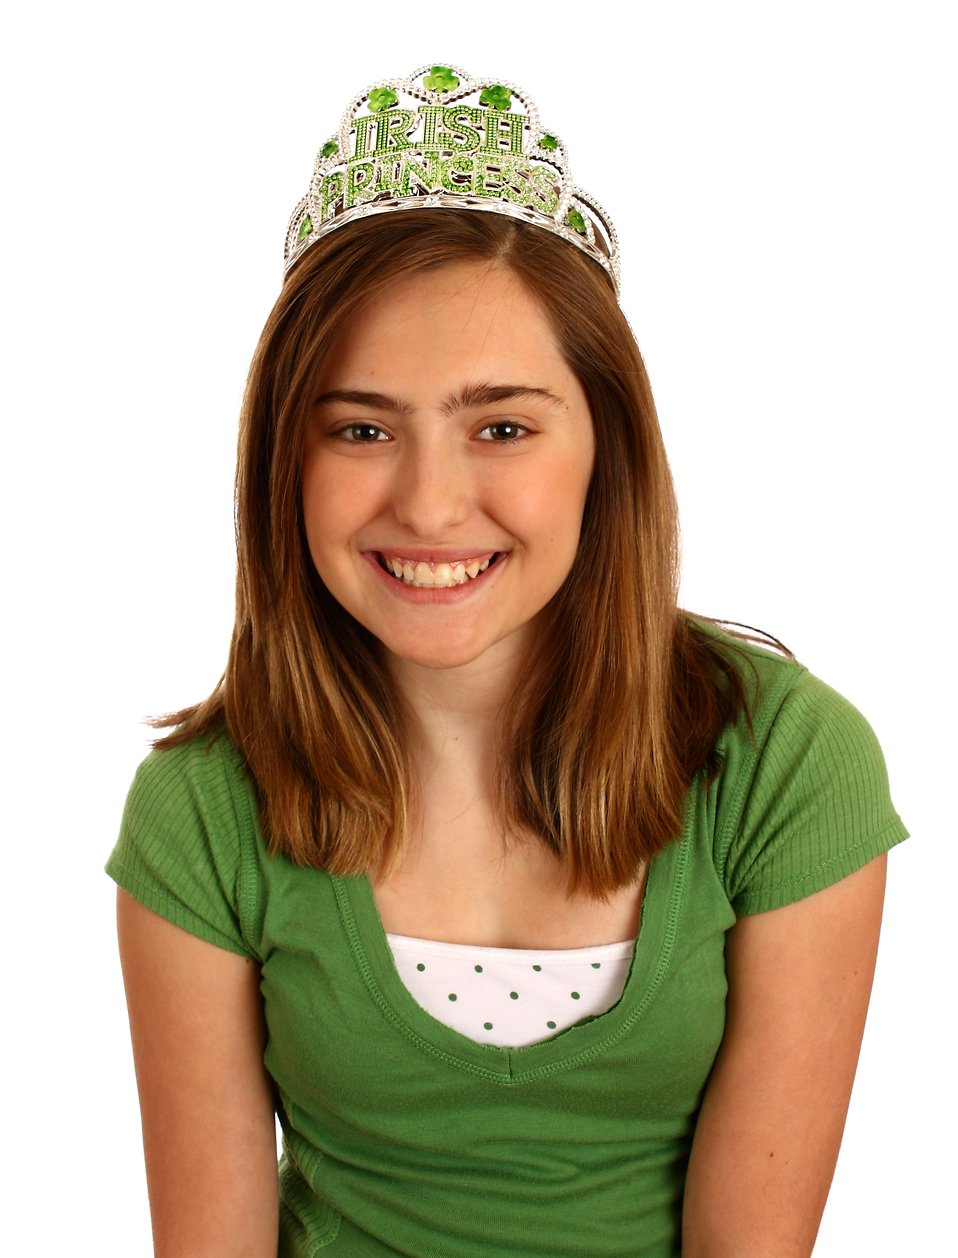 A cute young girl dressed up for Saint Patrick's Day with a tiara : Free Stock Photo